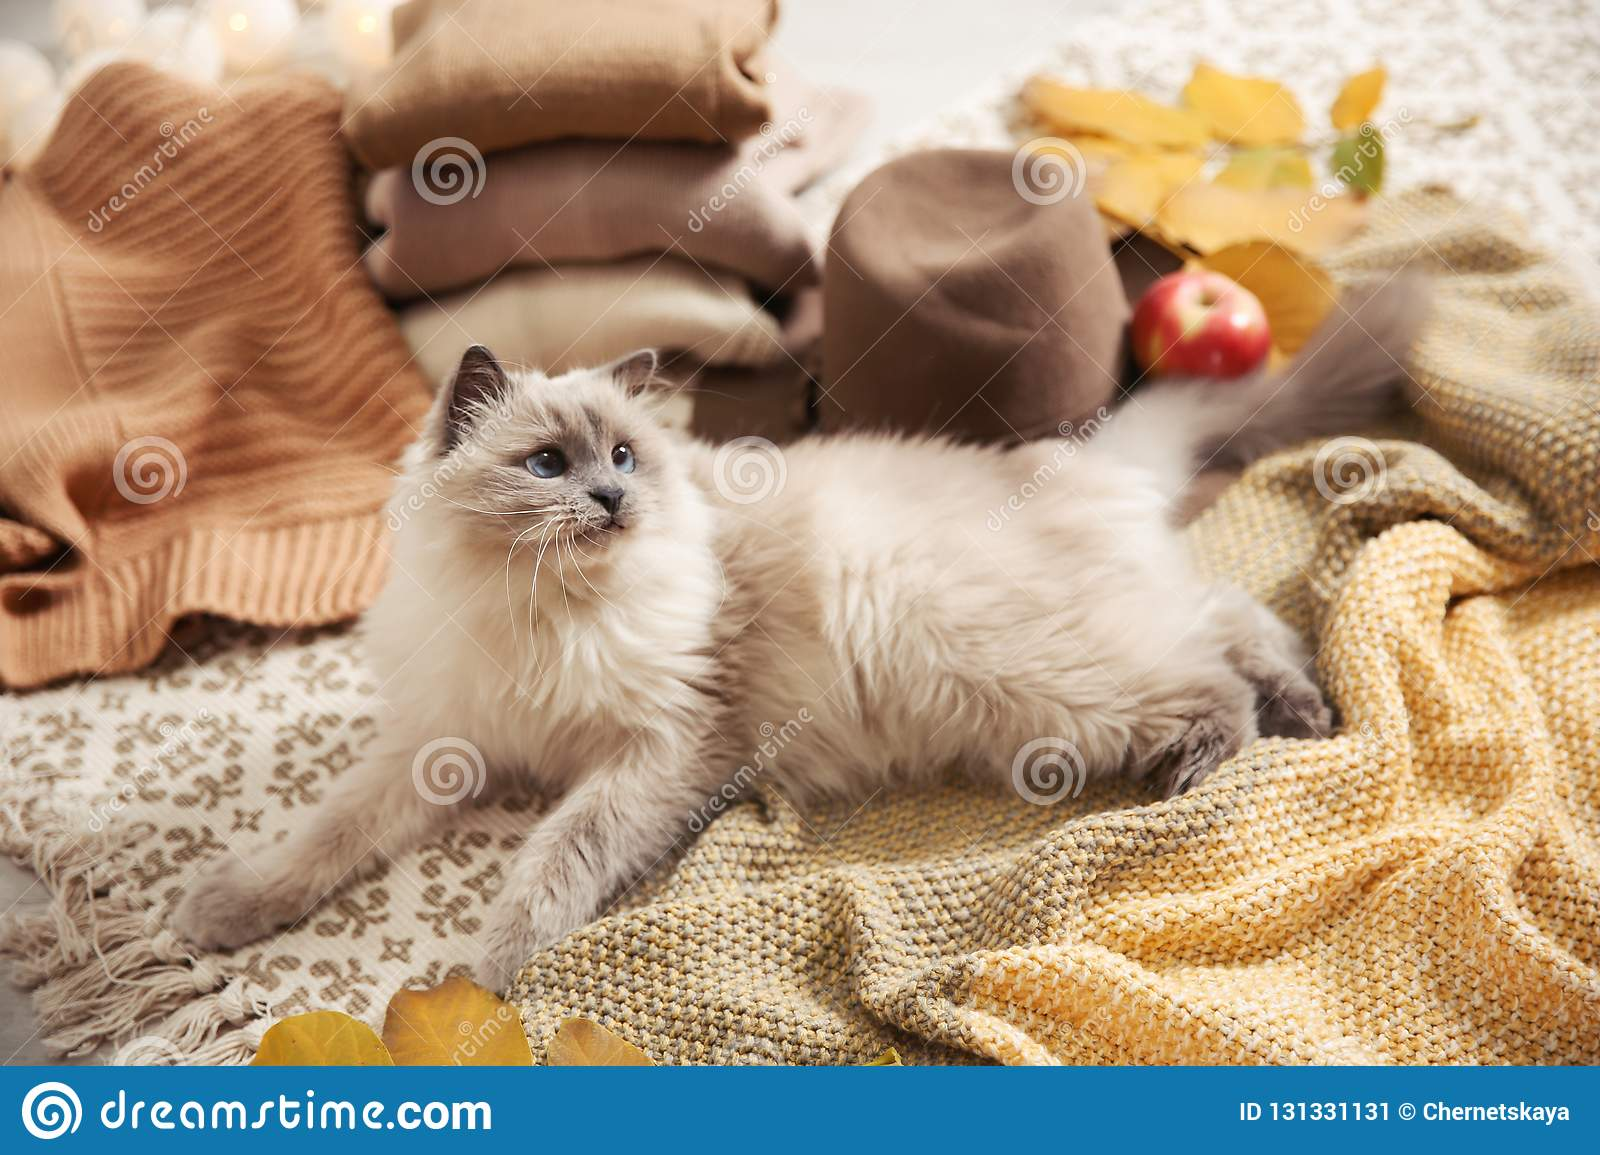 Cute cat with knitted blanket on floor at home